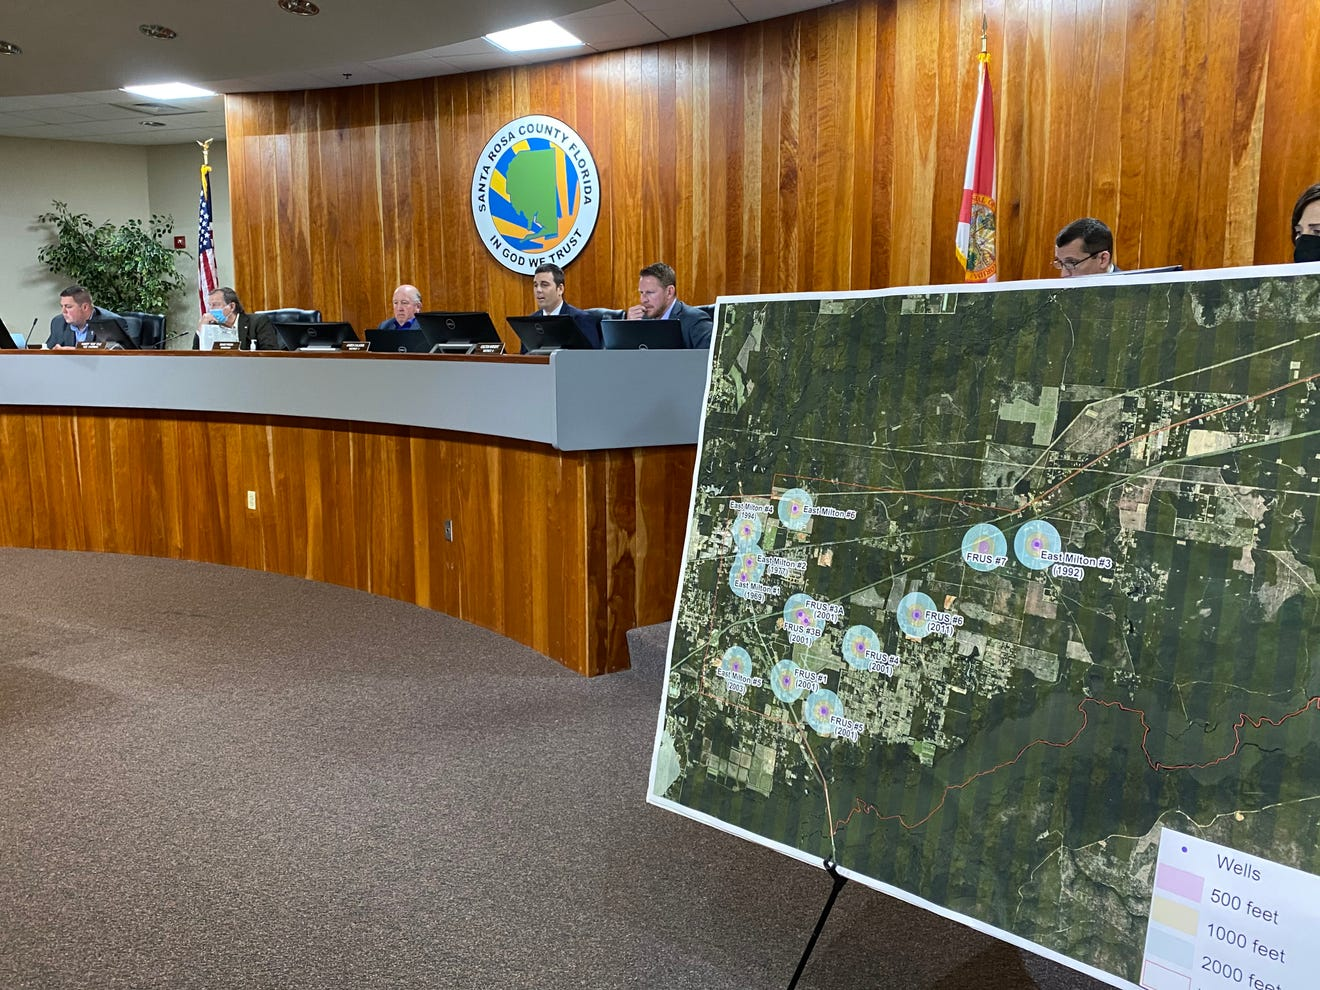 A board showing a map of borrow pits in Santa Rosa County on display at a County Commission meeting